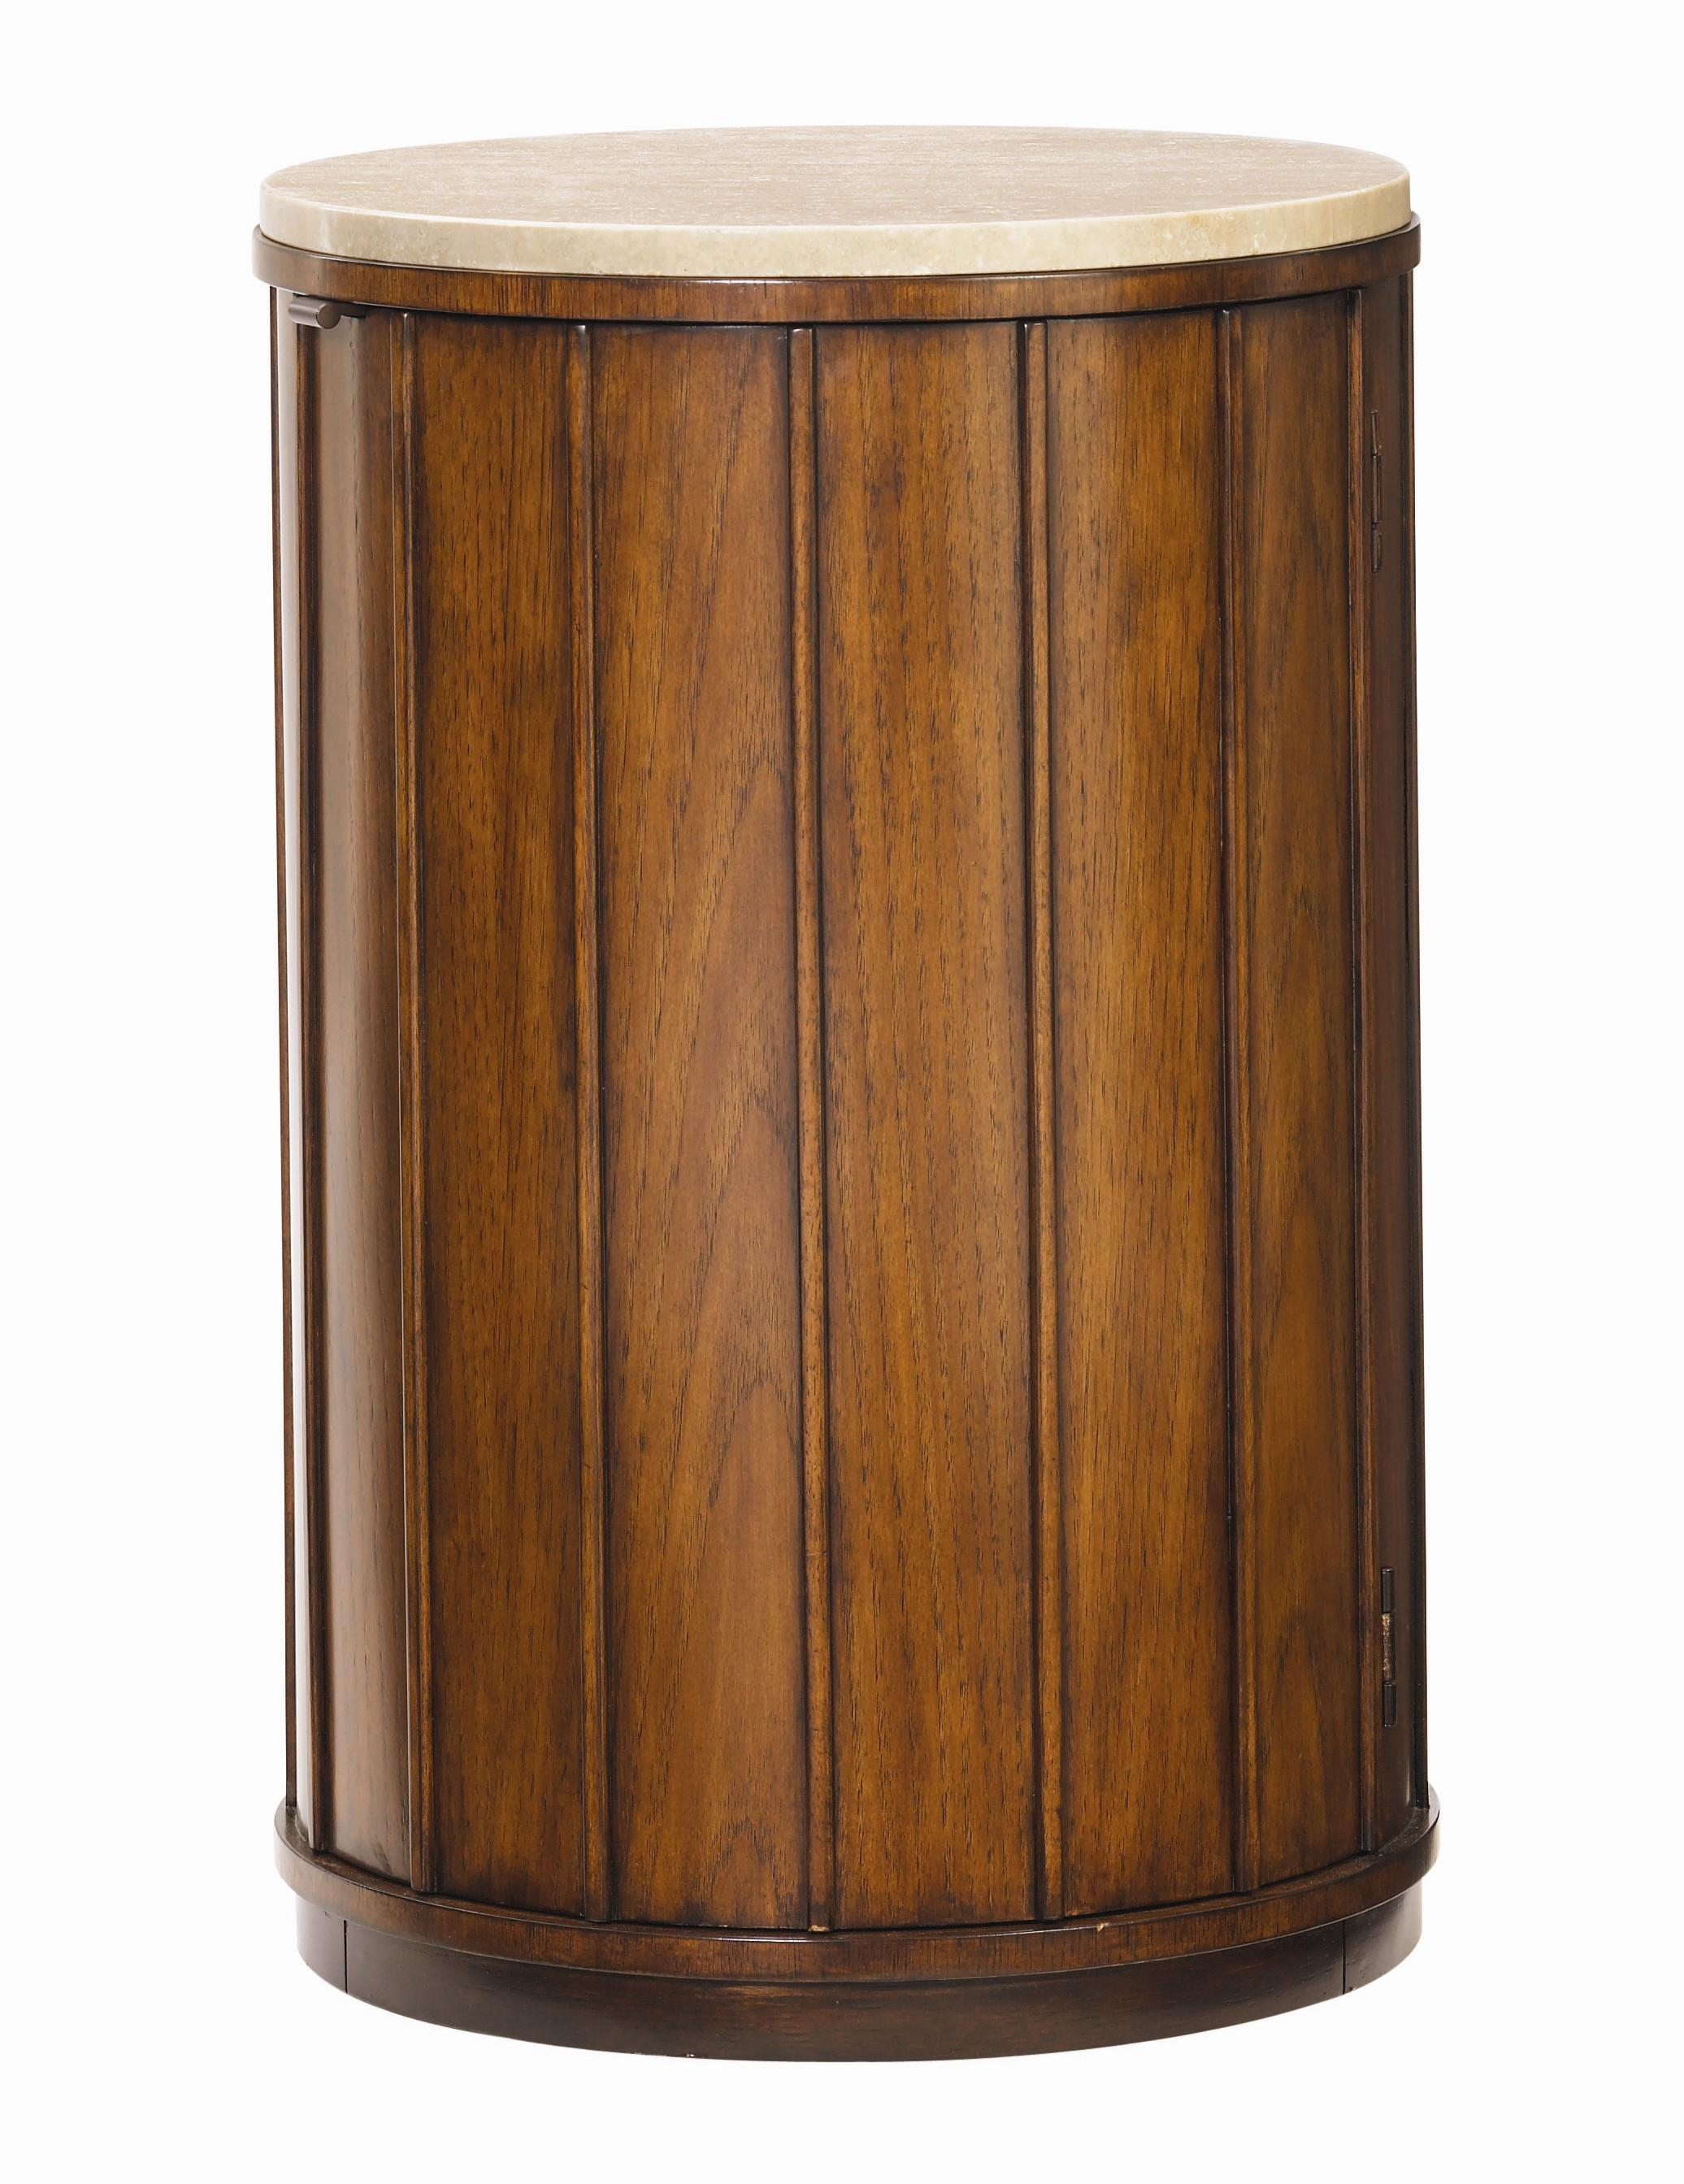 Ocean Club Fiji Drum Table by Tommy Bahama Home at Johnny Janosik